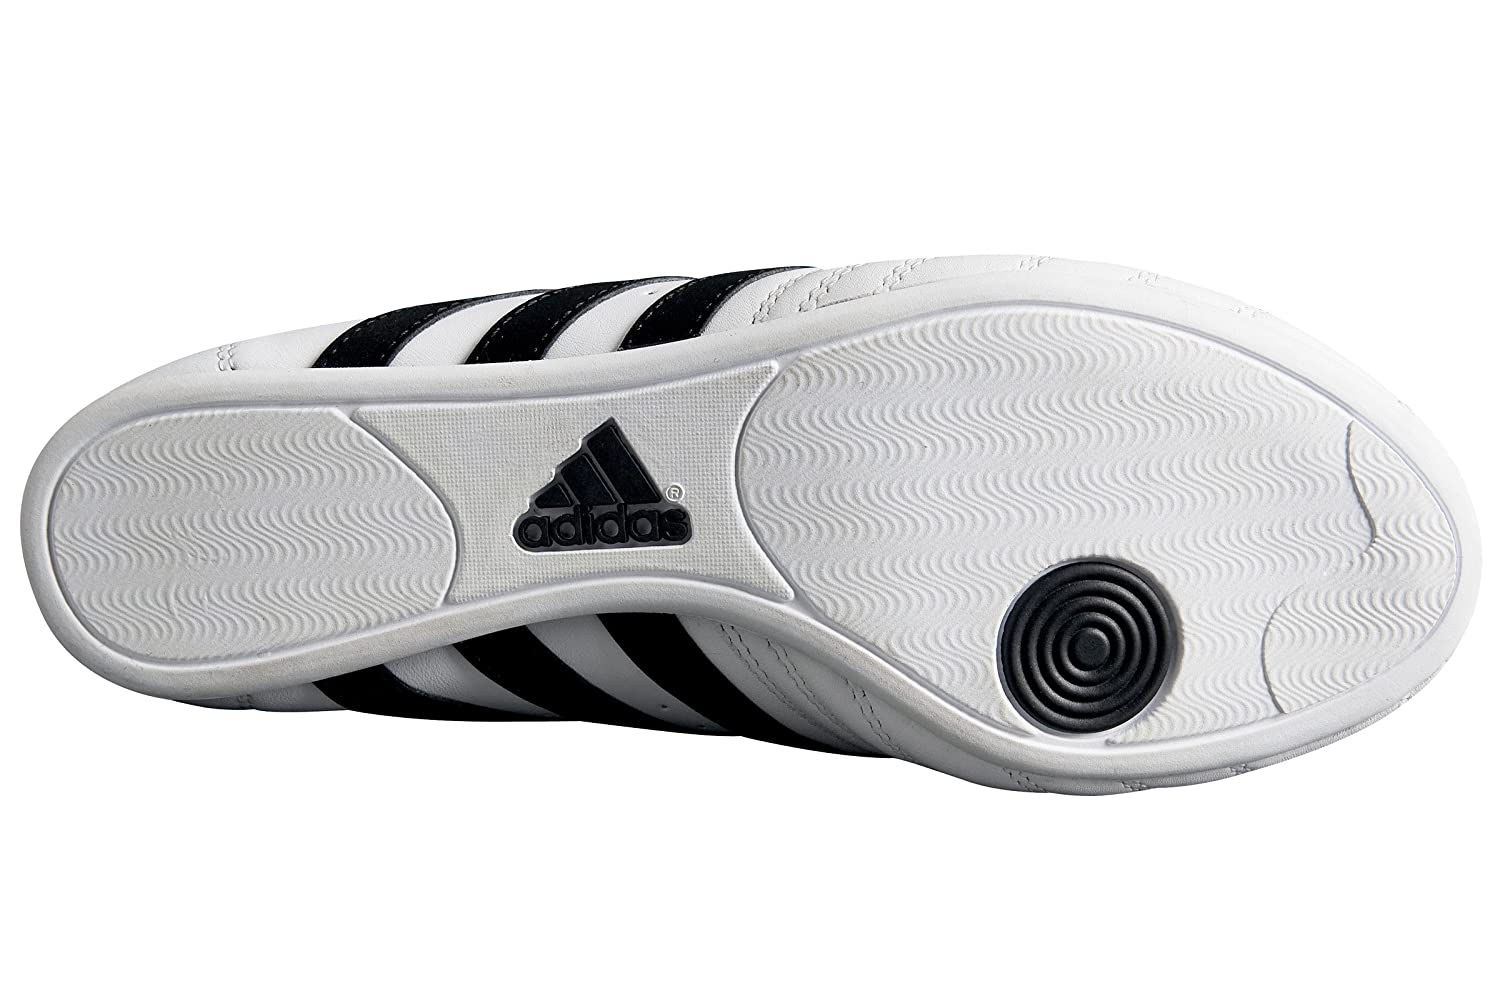 adidas men's taekwondo trainers slip on style cushioned insole sports shoes